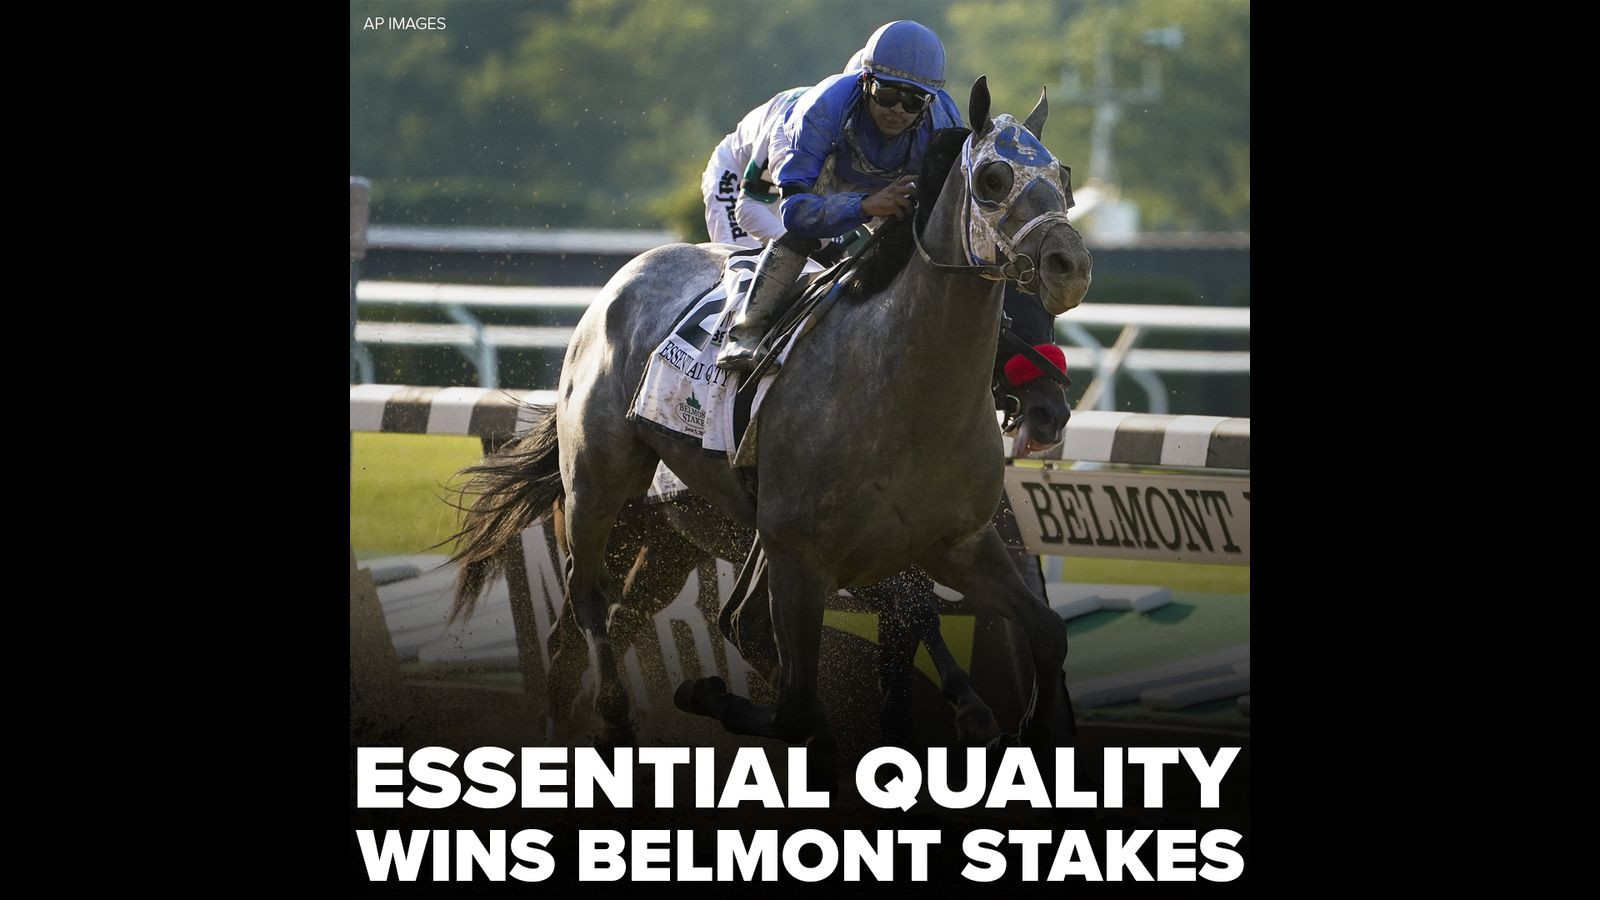 Belmont Stakes 2021: Favorite Essential Quality crosses finish line first at 153rd Belmont Stakes